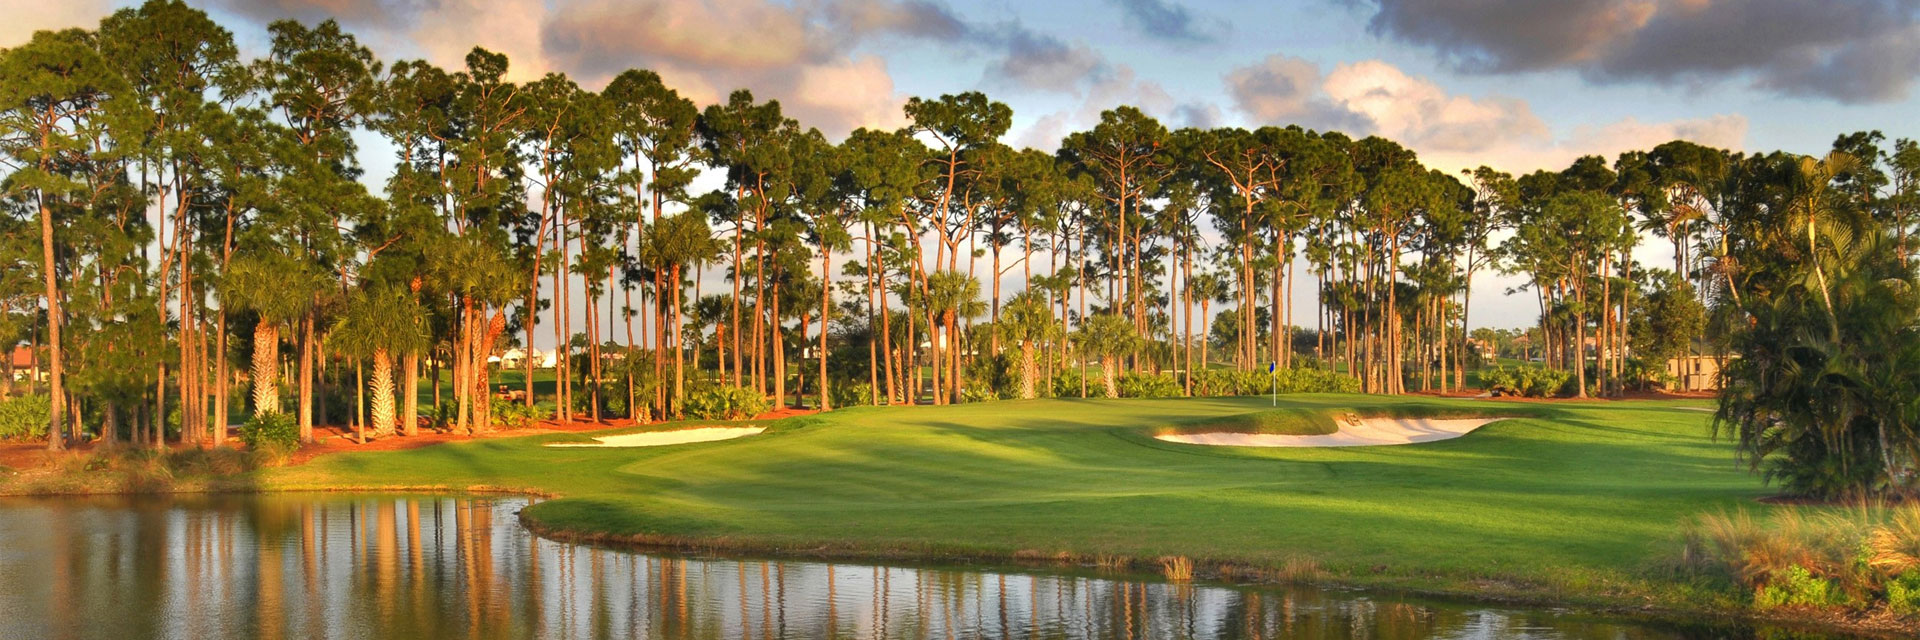 West Palm Beach Golf Package: PGA National Fall/Winter UNLIMITED Golf Getaway from $307 per person/per day!